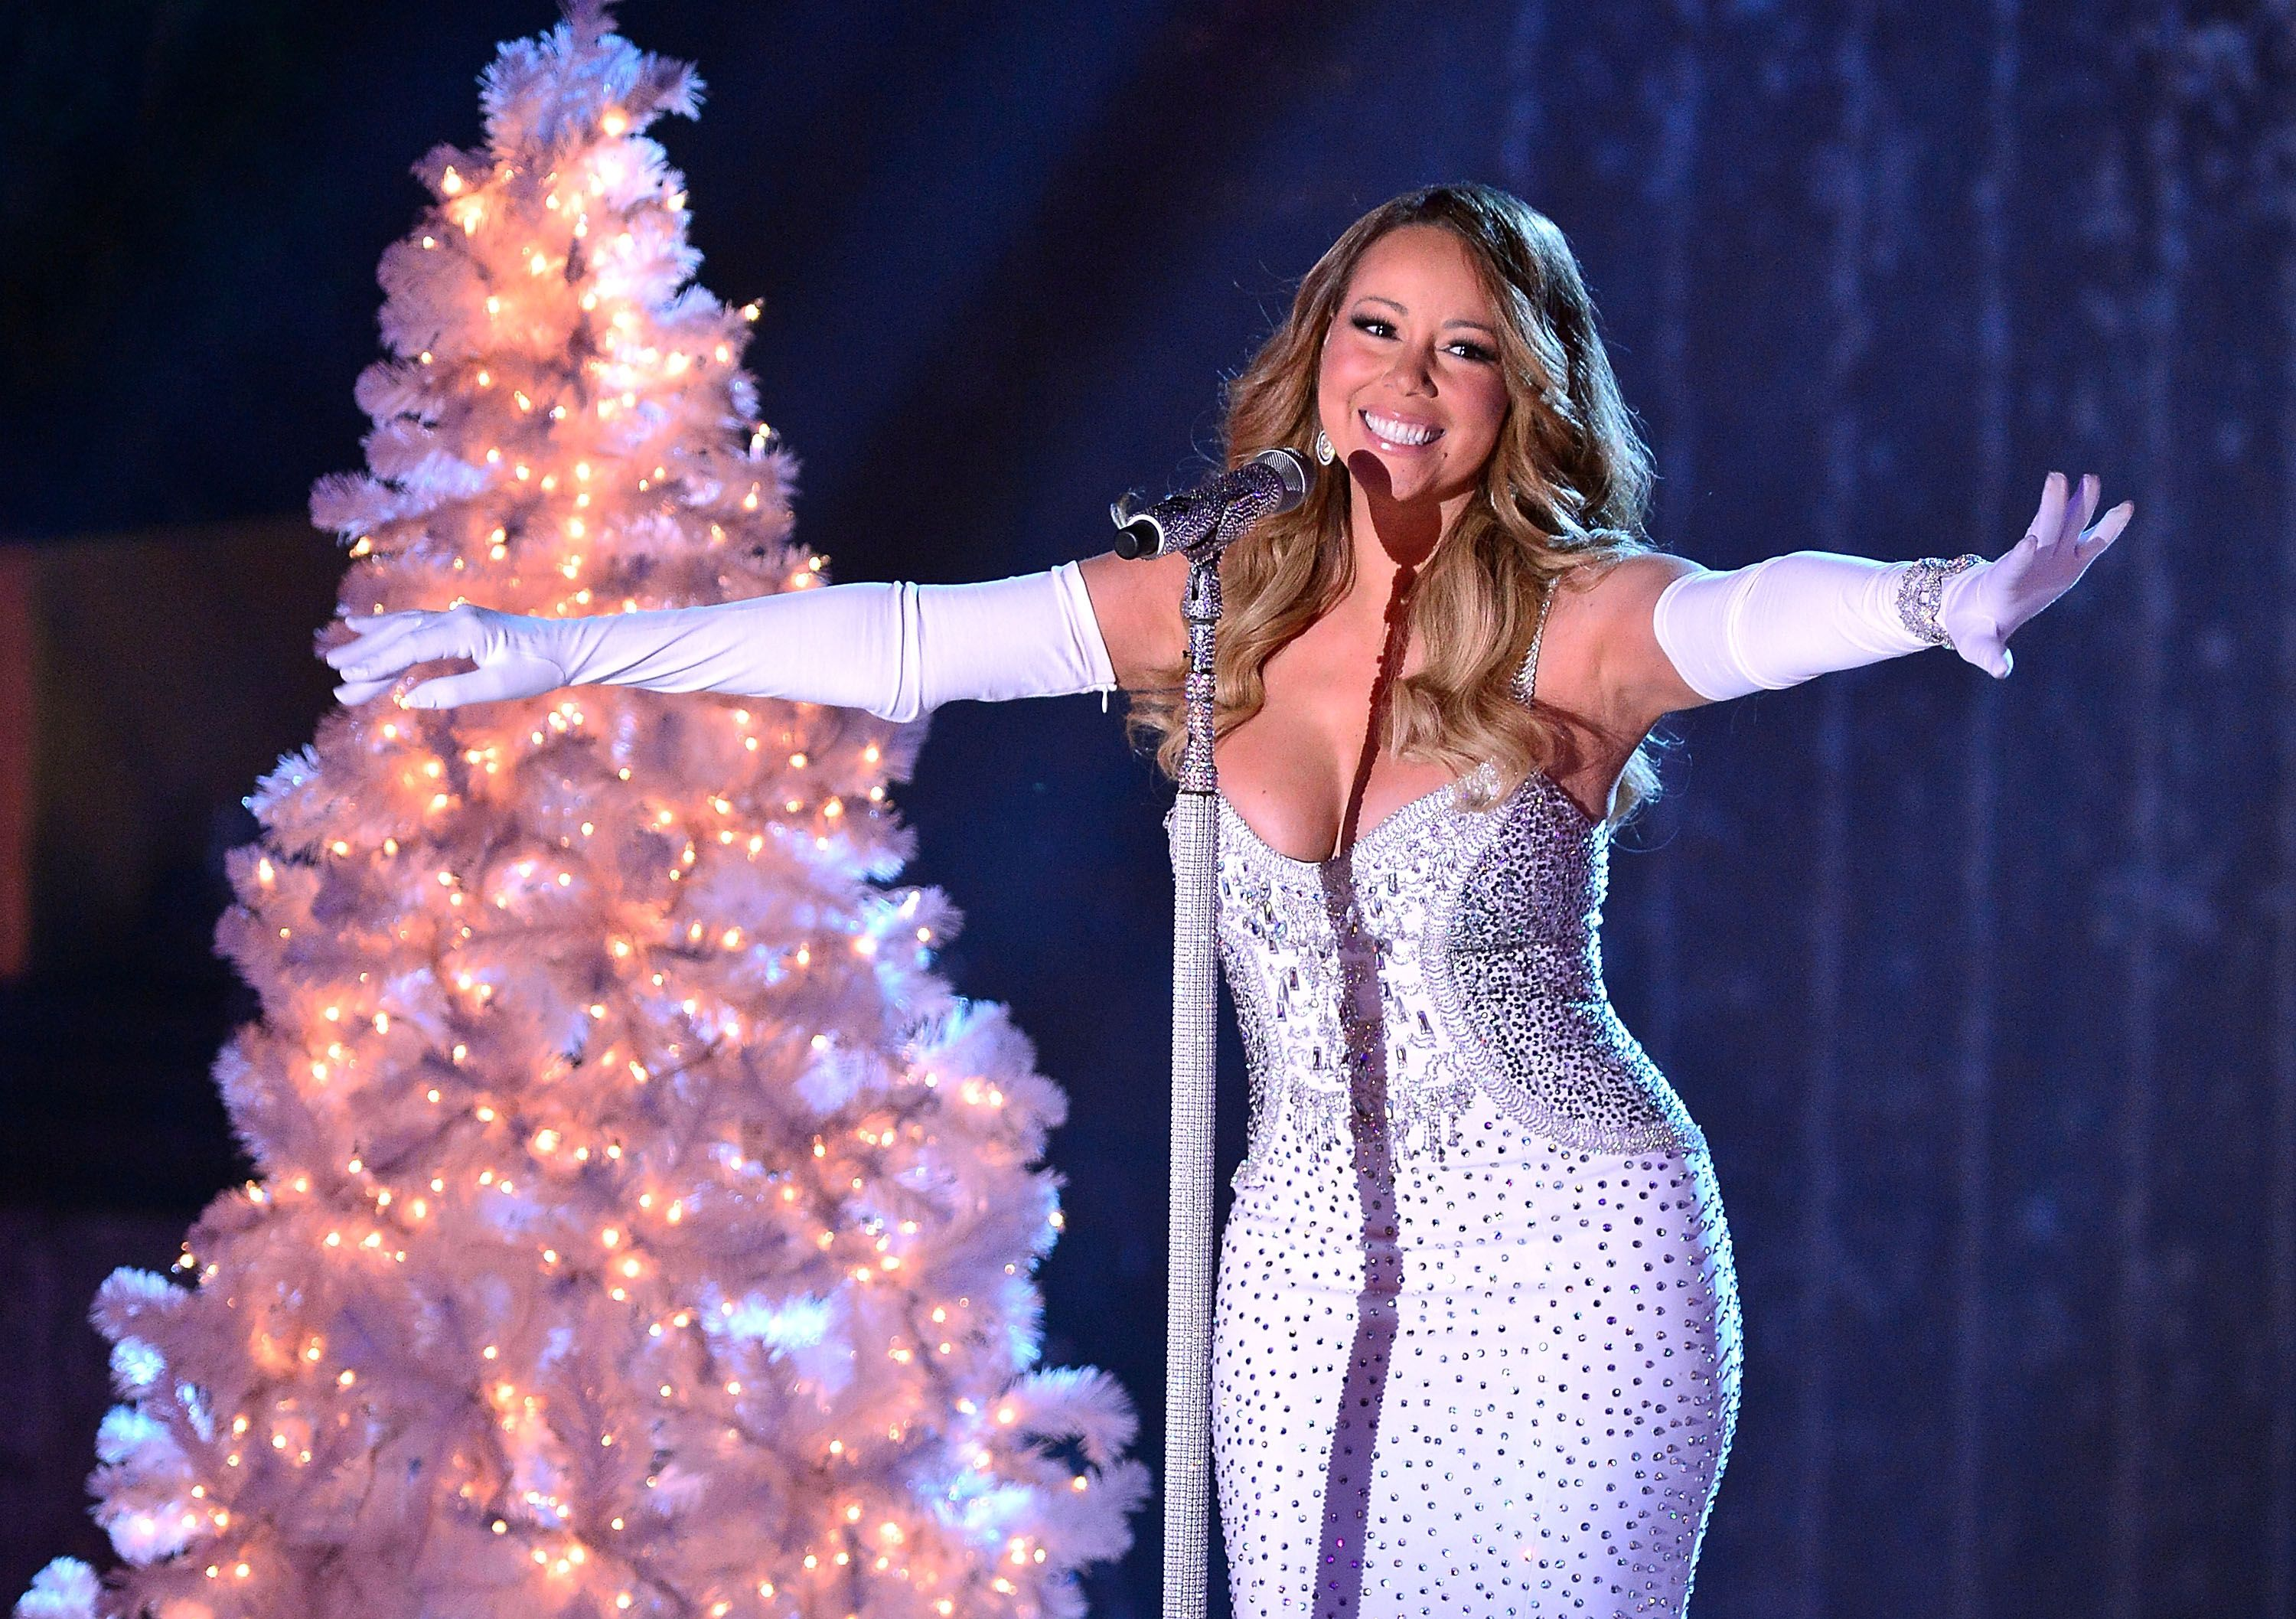 Mariah Carey All I Want For Christmas.14 Things You Didn T Know About Mariah Carey S Iconic All I Want For Christmas Is You